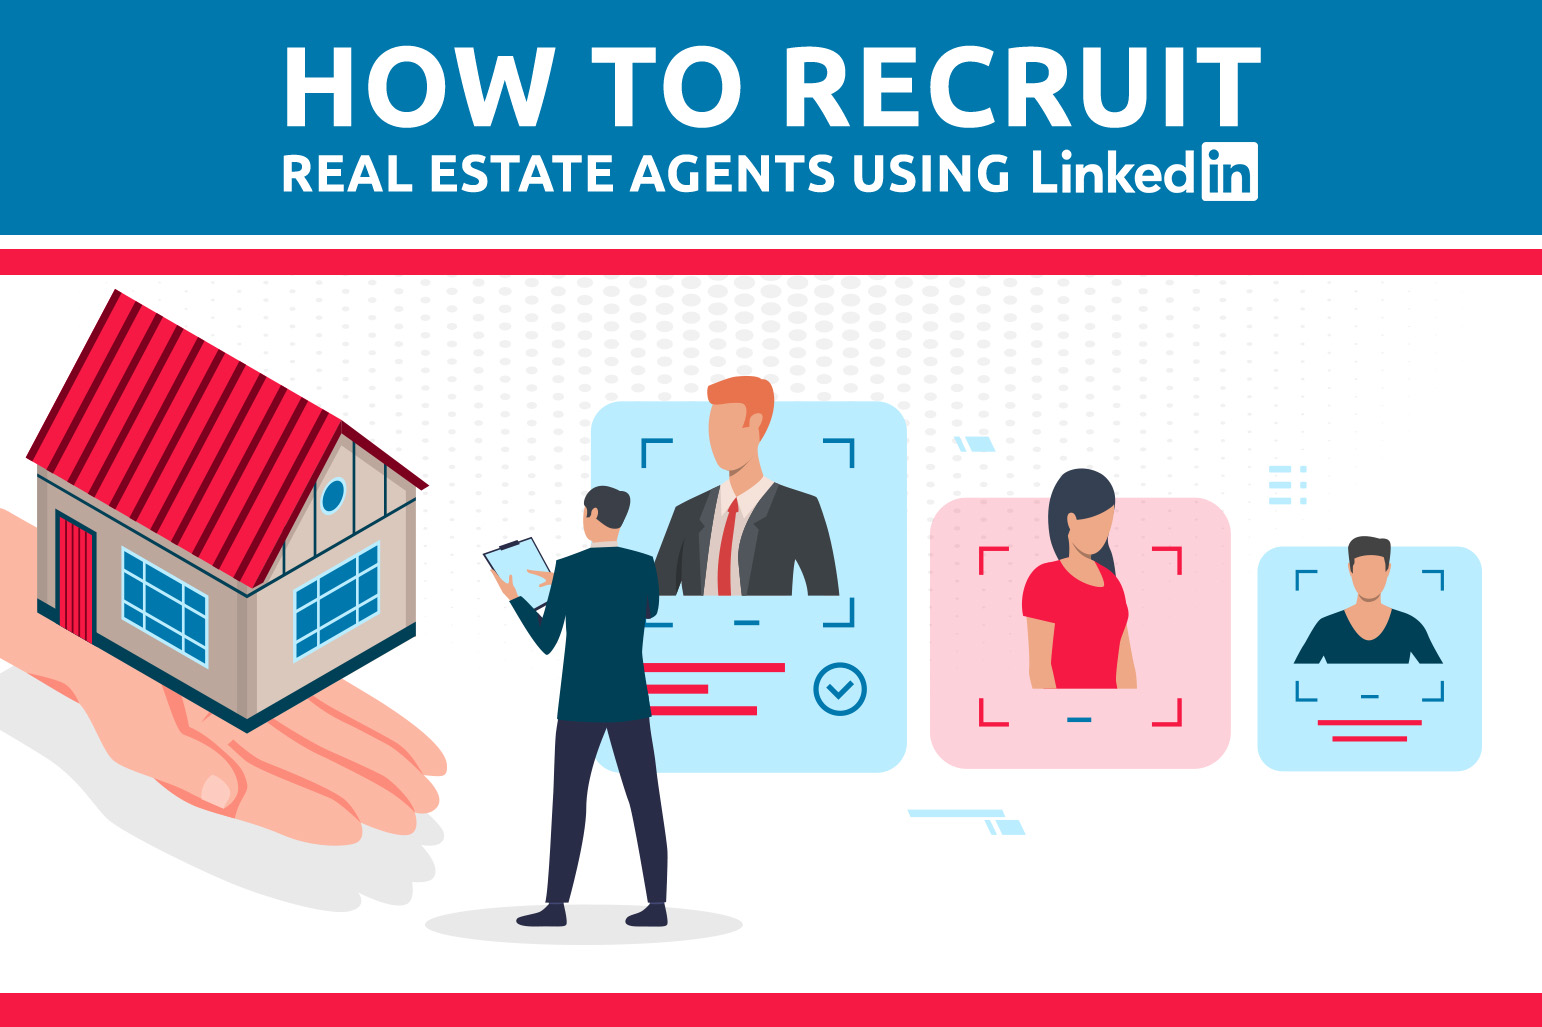 How To Recruit Real Estate Agents Using LinkedIn